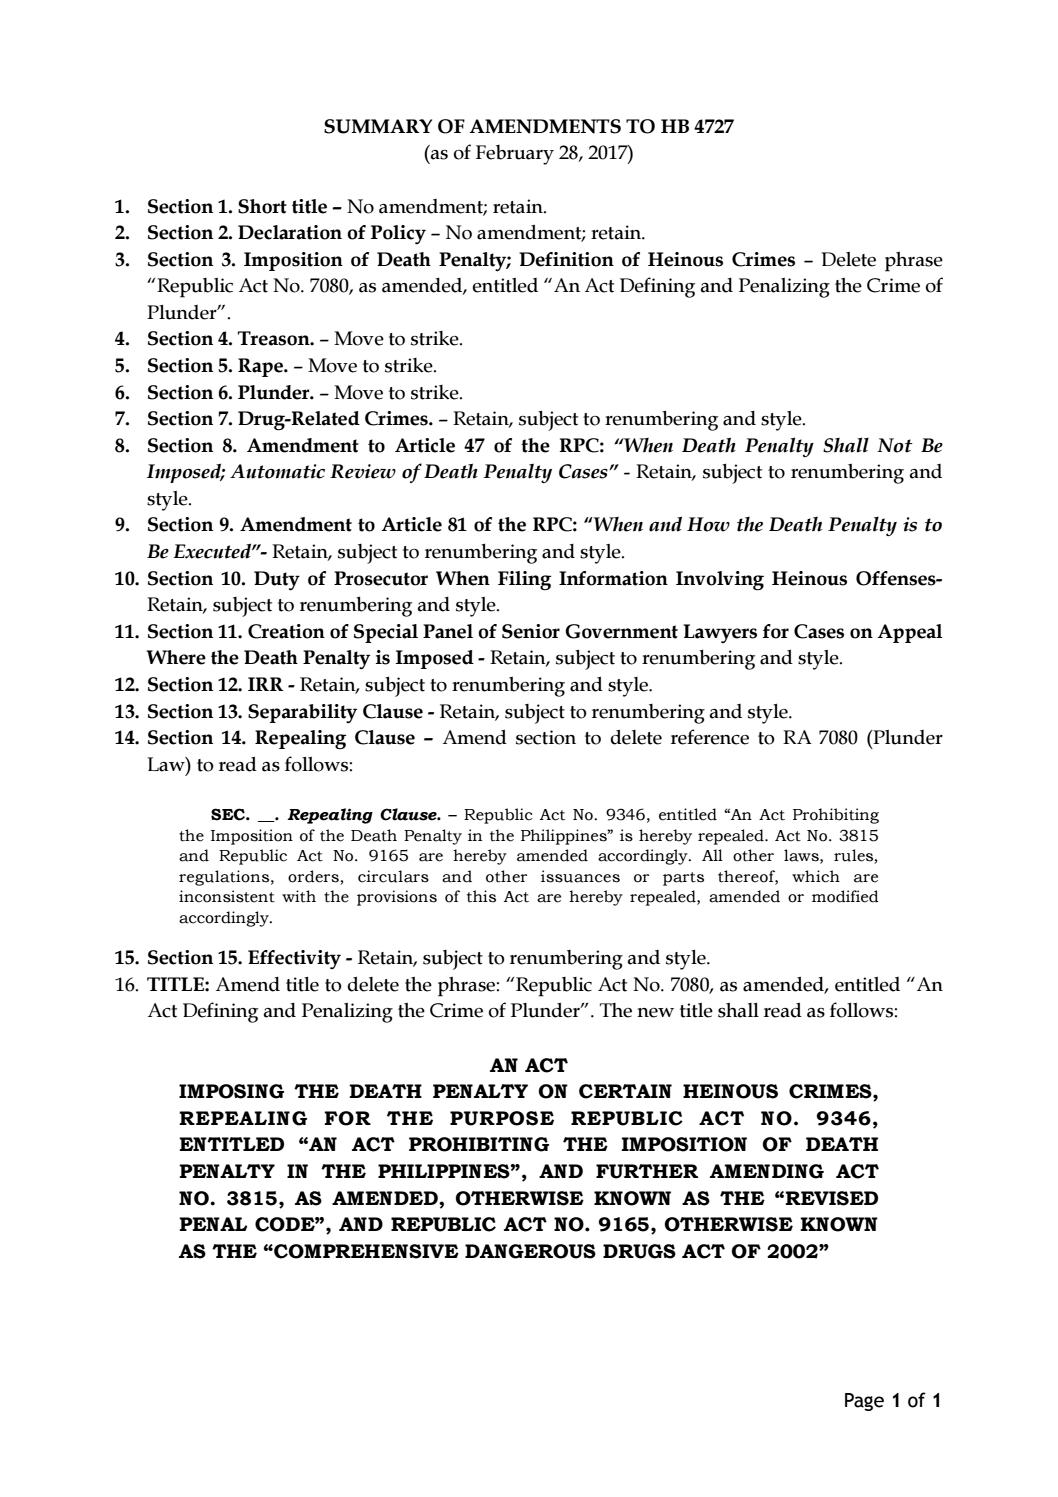 002 Essay Example Argumentative On Death Penalty Page 1 Unbelievable Ideas Persuasive About In The Philippines Pro Full